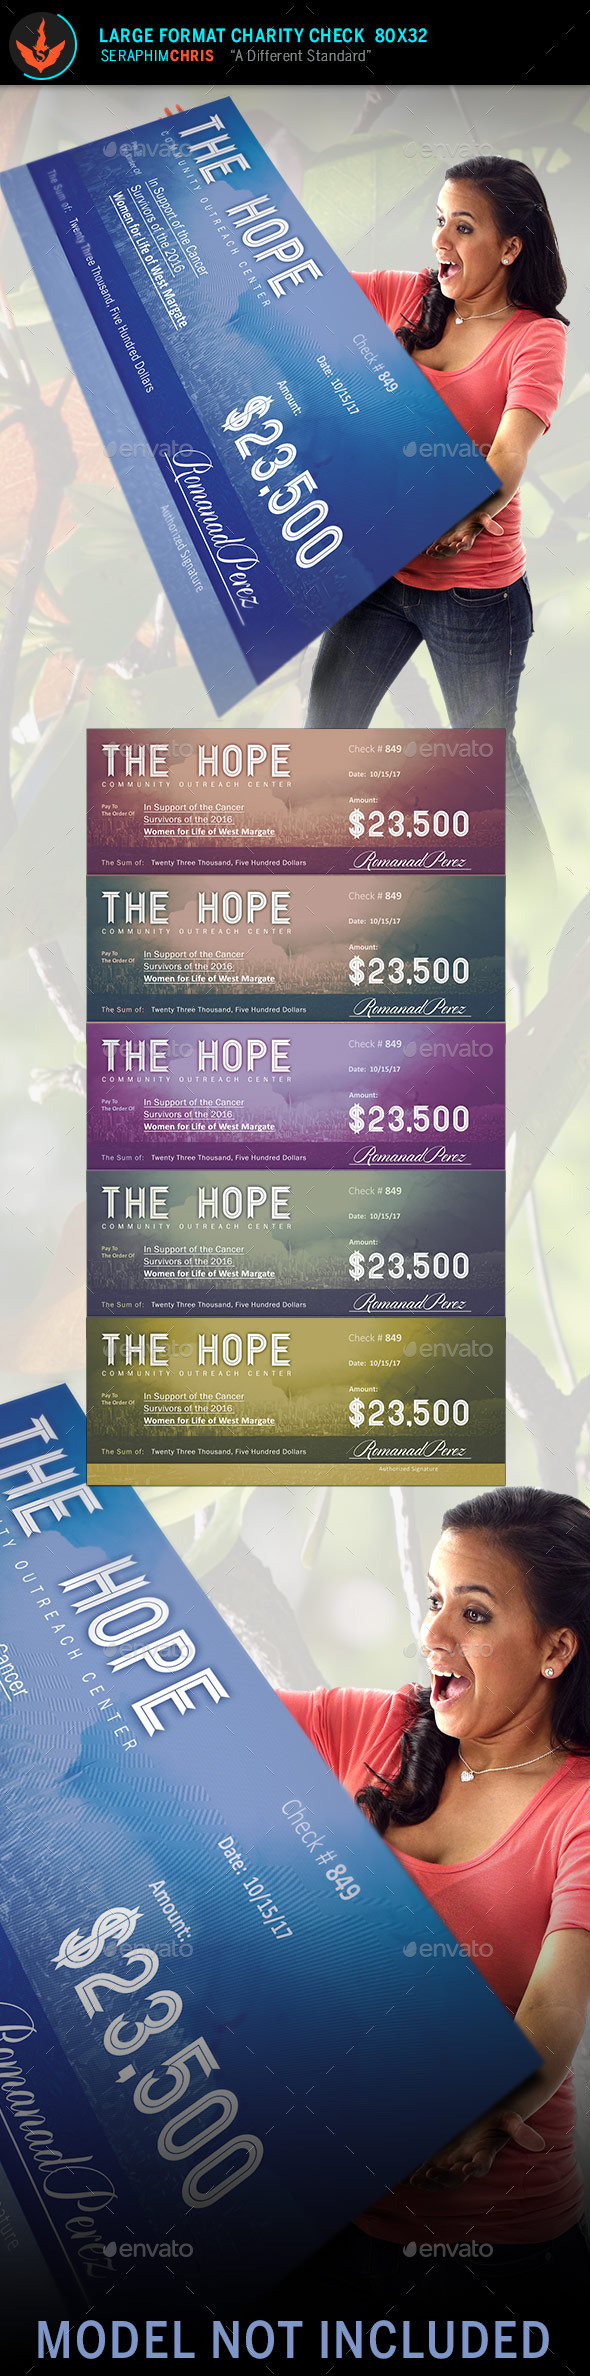 GraphicRiver Hope Large Format Charity Check Template 11093735